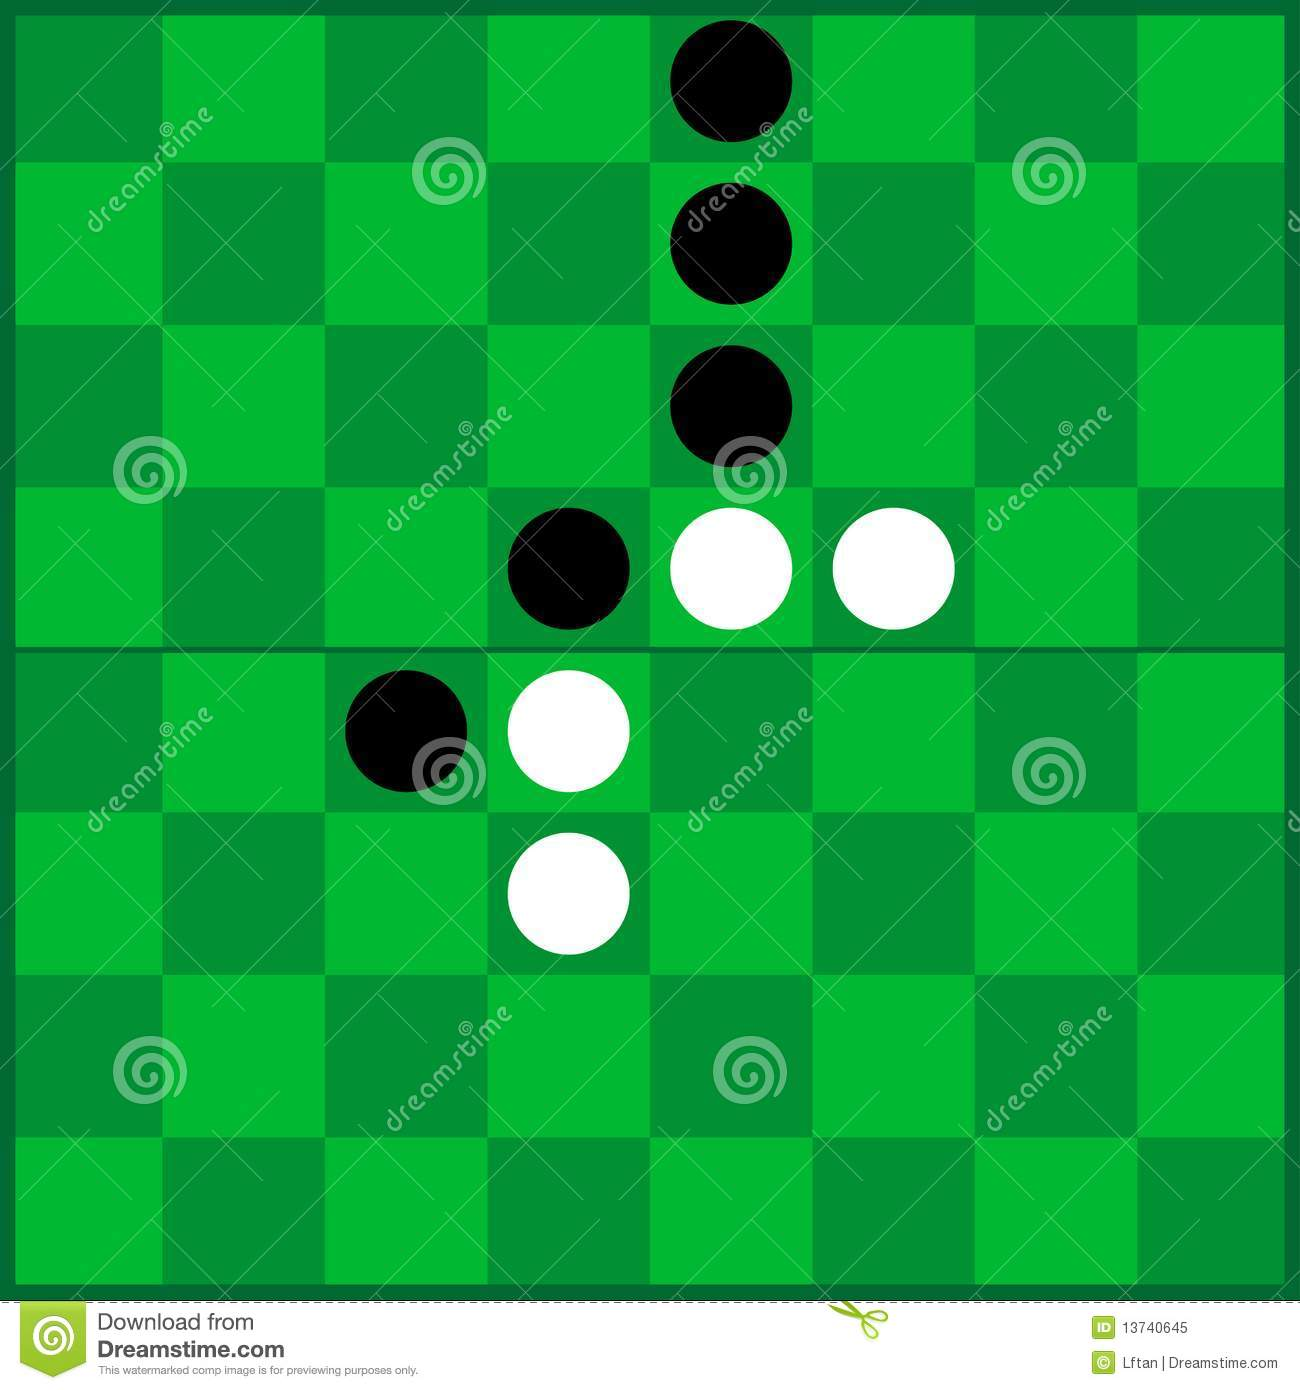 Reversi end game strategy